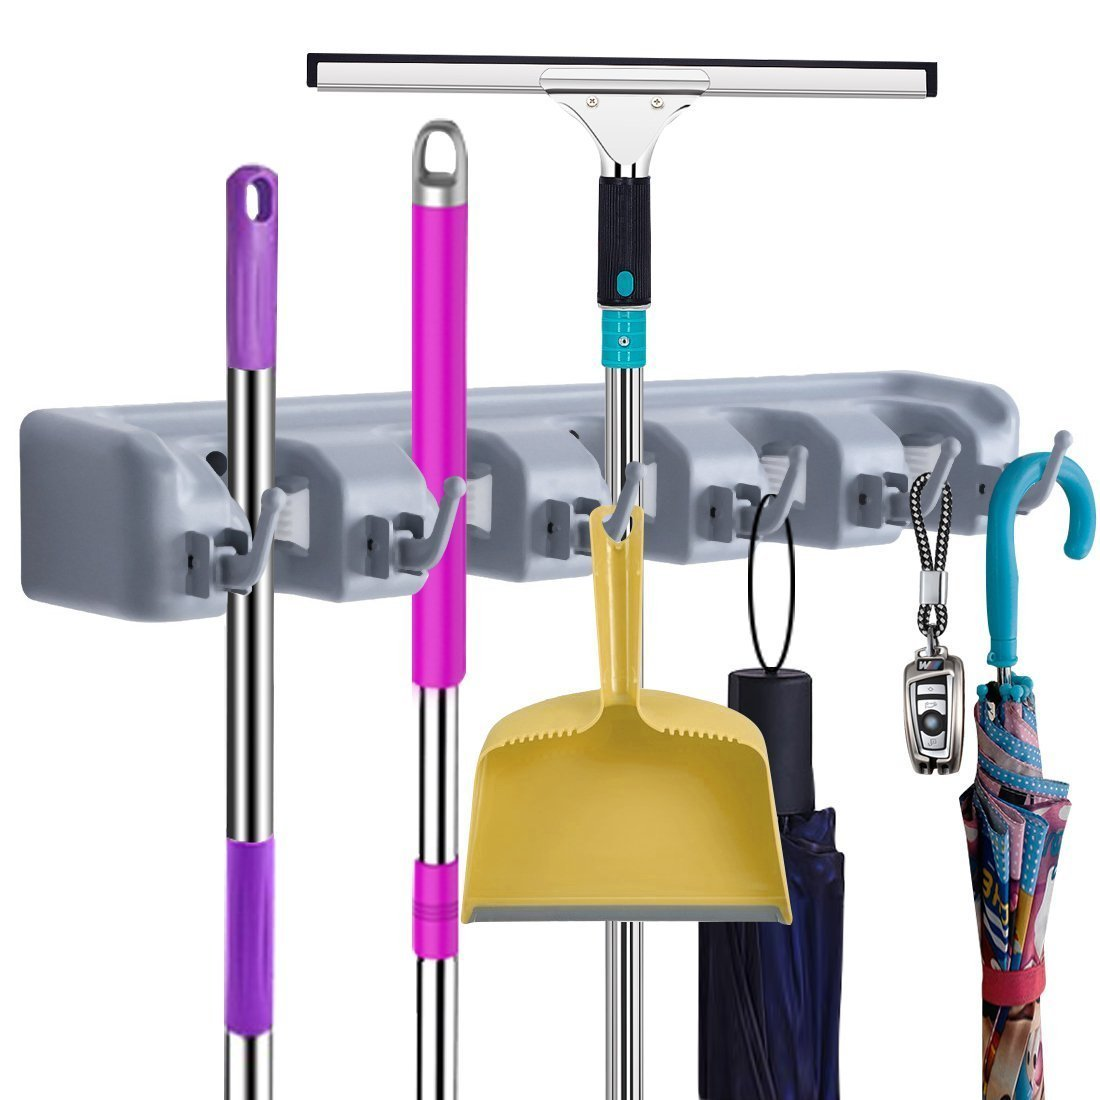 Mop Broom Holder,Wall Mounted Garden Tool Organizer Space Saving Storage Rack Hanger with 5 Position with 6 Hooks Strong Grip Holds up to 11 Tools for Kitchen Garden and Garage